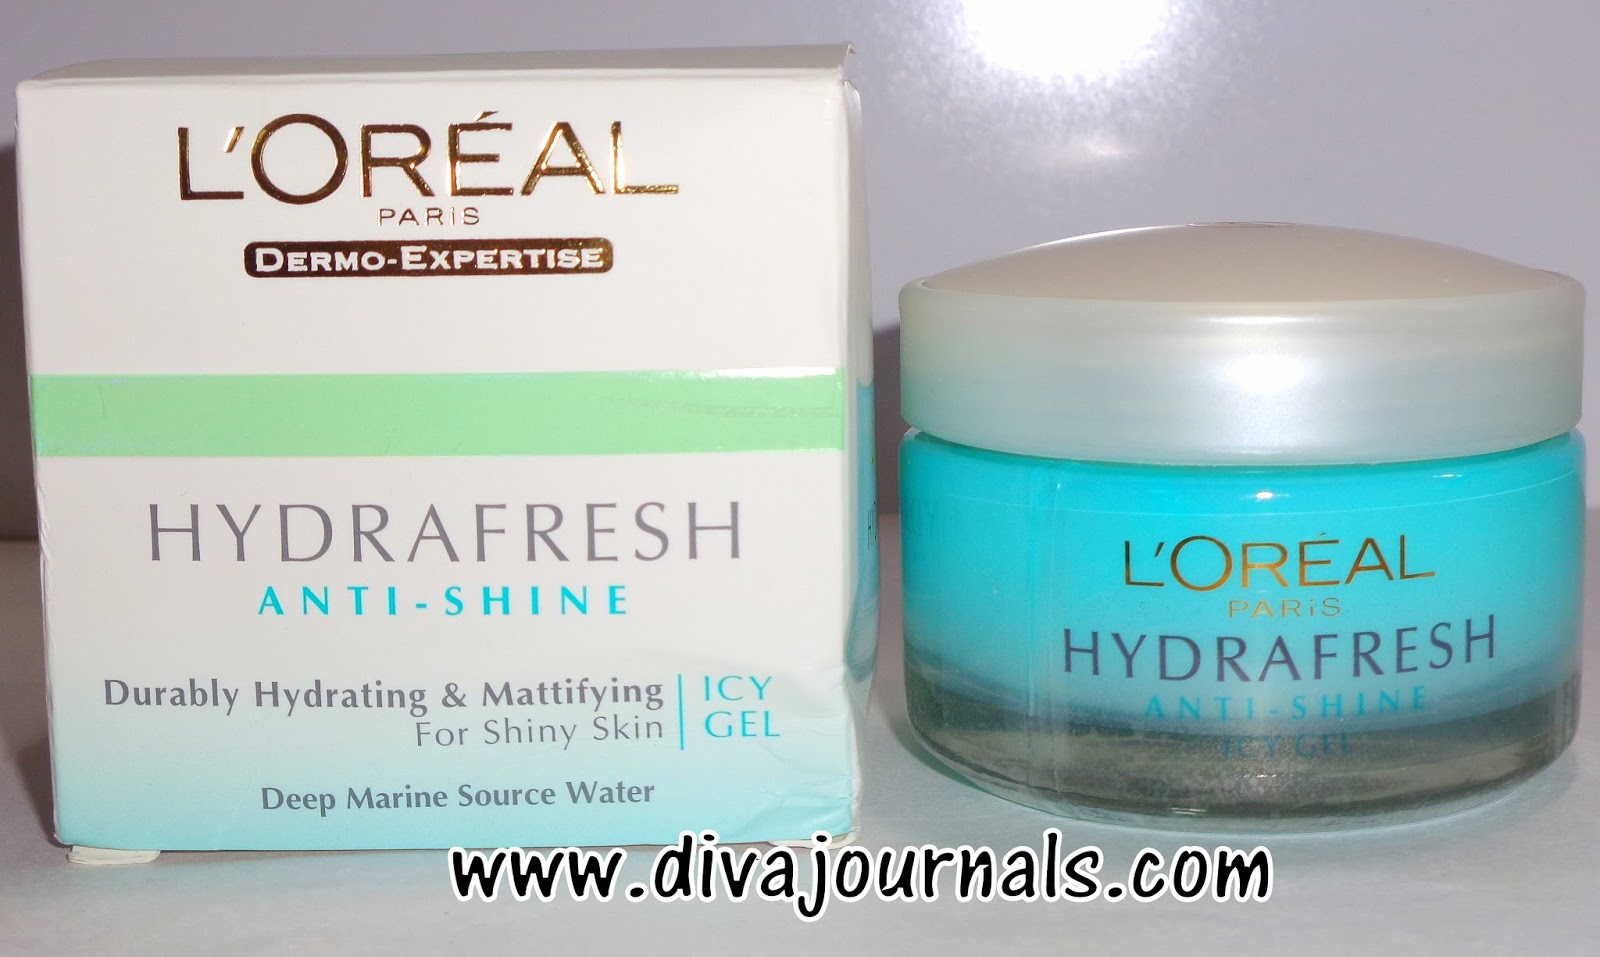 Loreal Hydrafresh Anti-shine Icy Gel Review